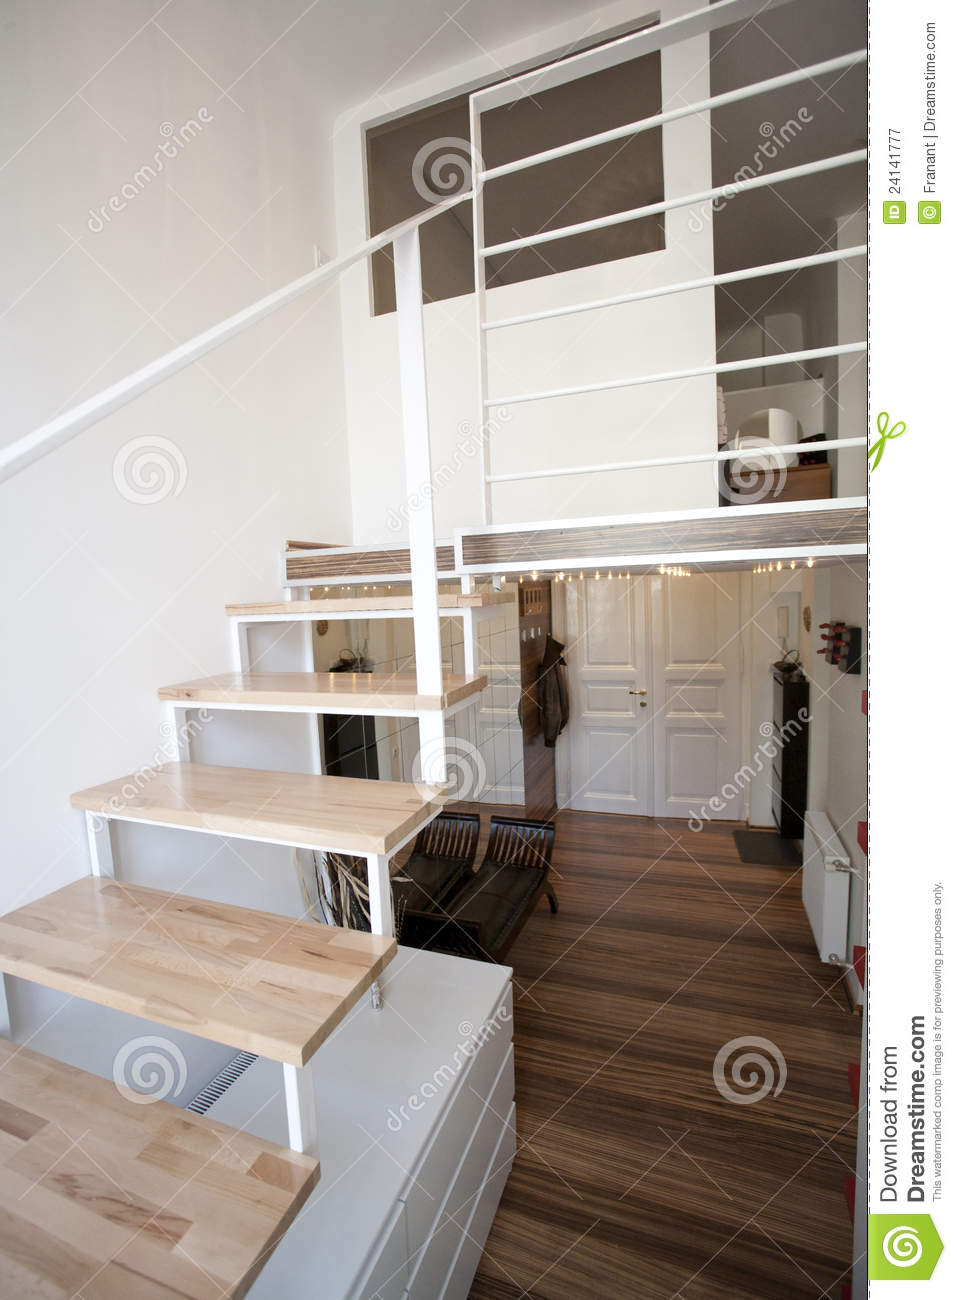 Gallery interior design royalty free stock photography for Z gallerie interior design